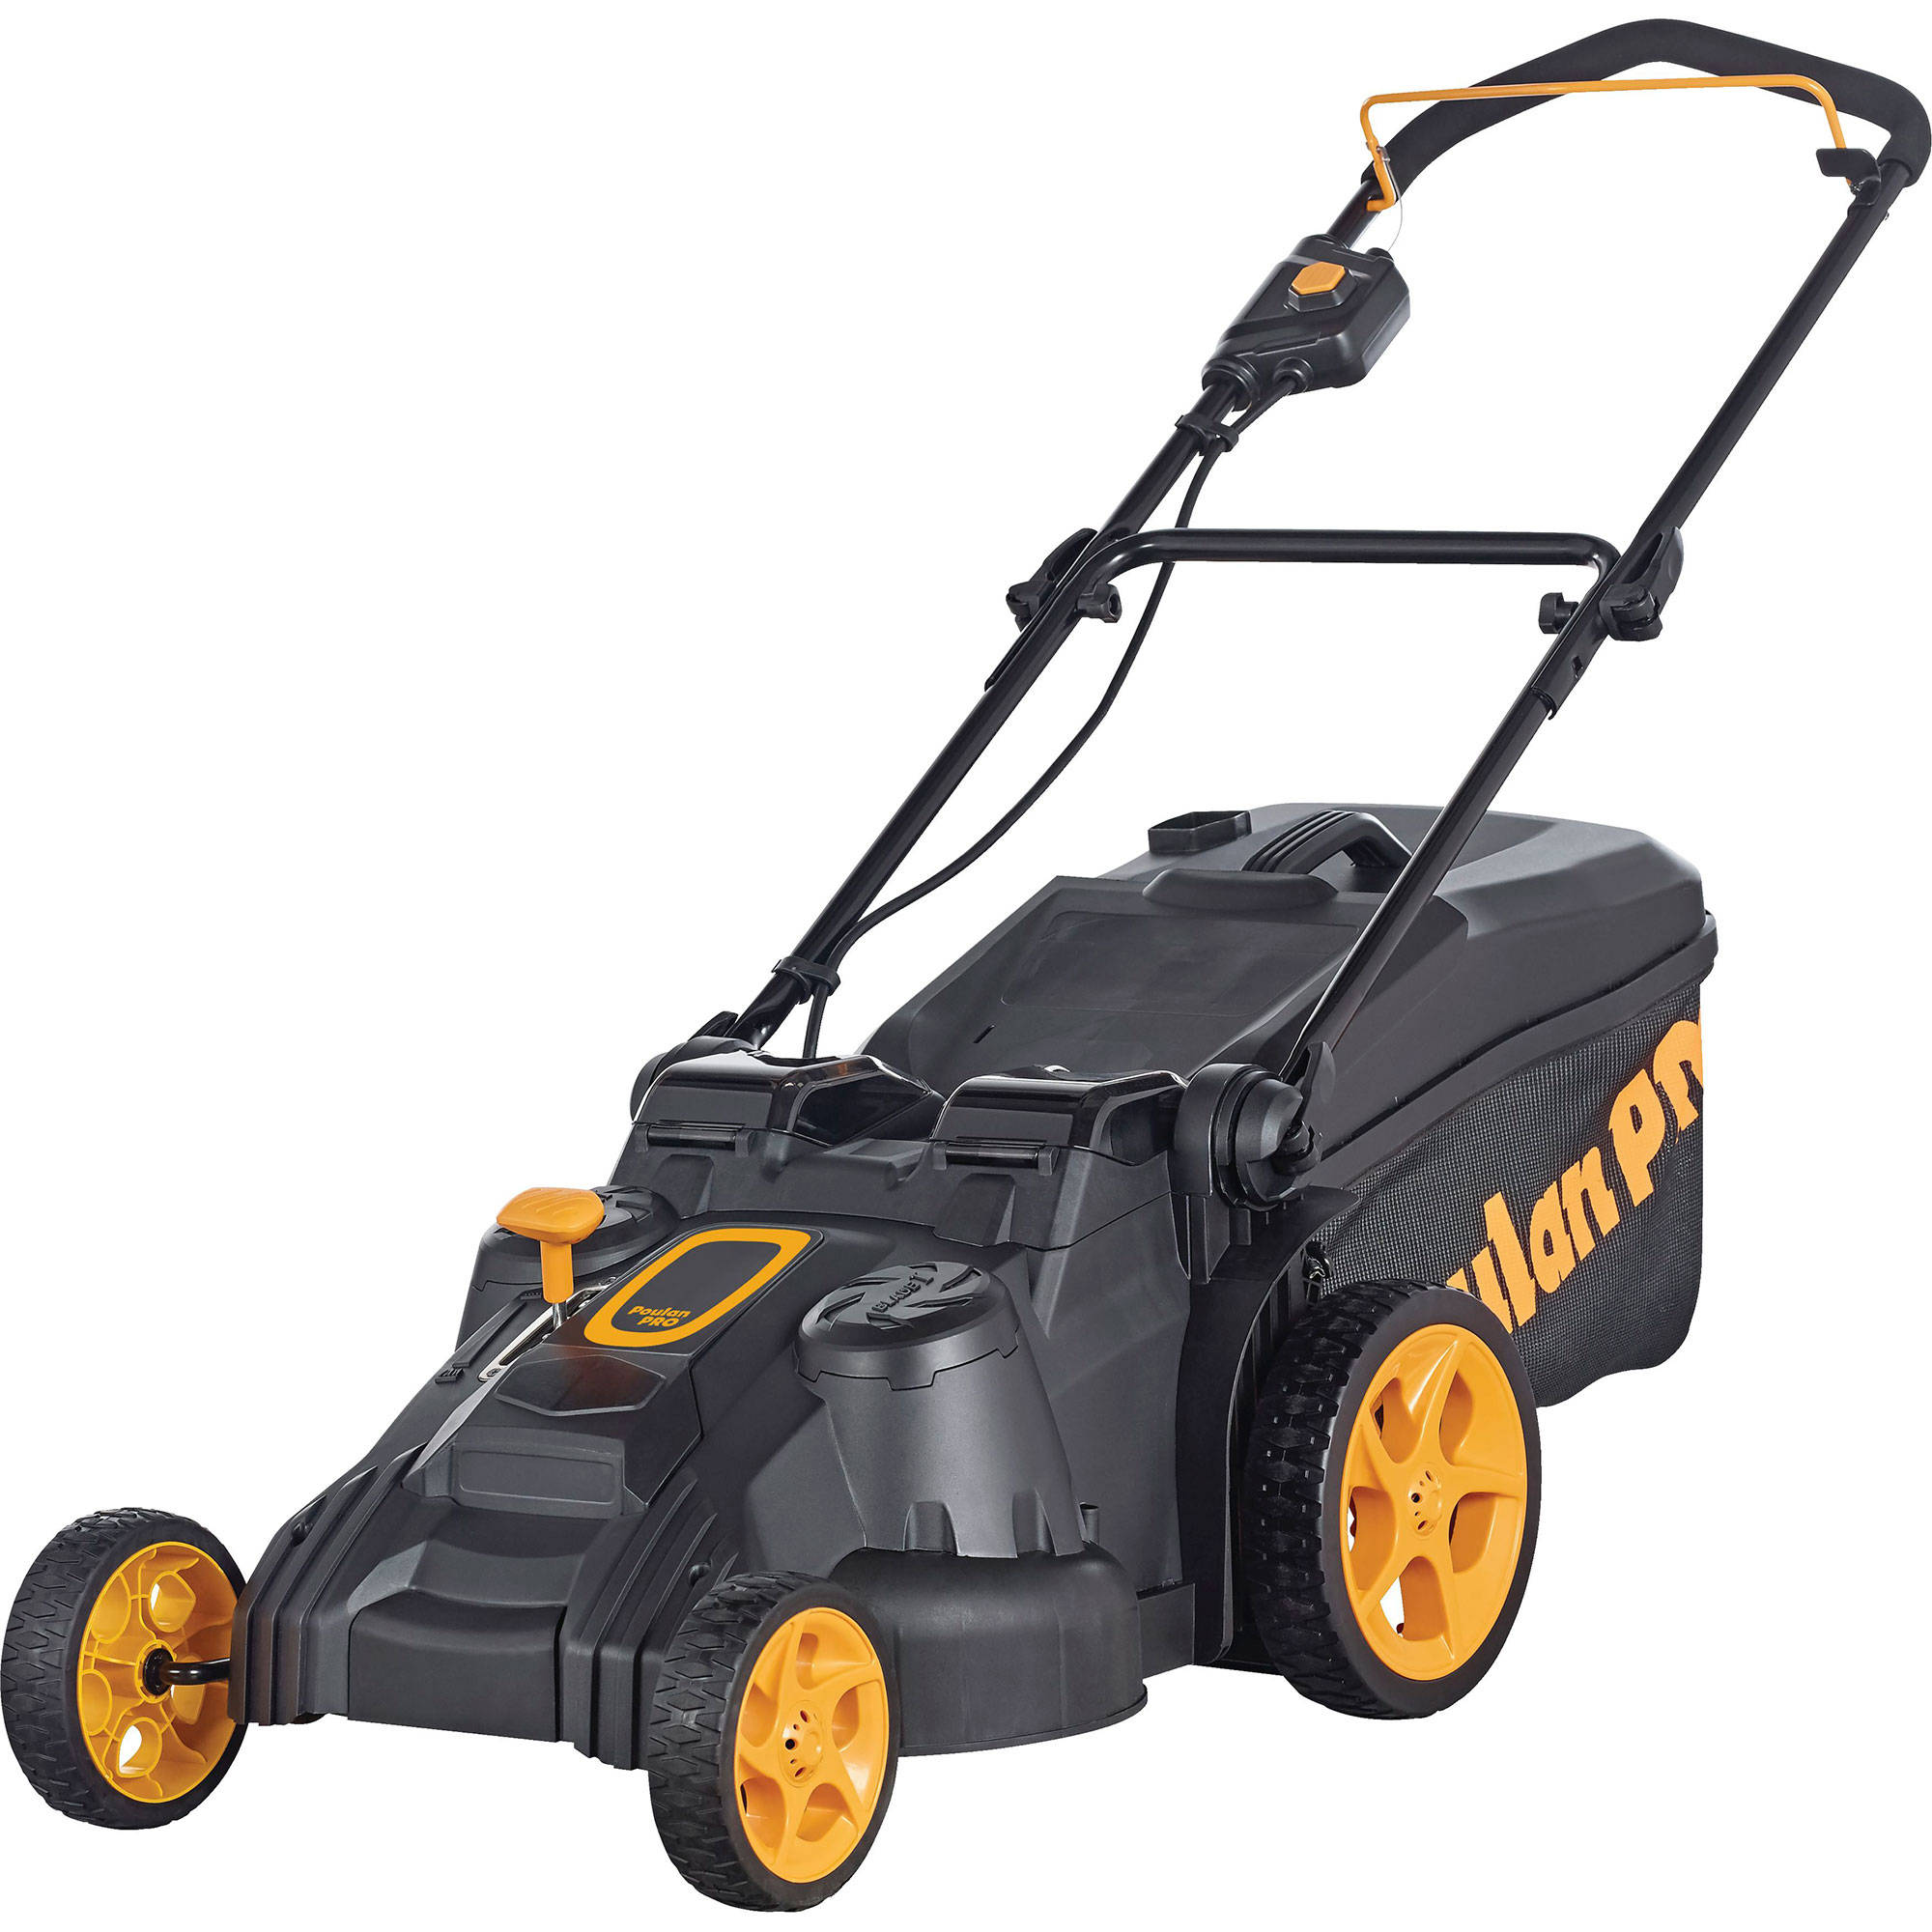 Poulan Pro 40-Volt Lithium-Ion Rechargeable Battery Lawn Mower by Husqvarna